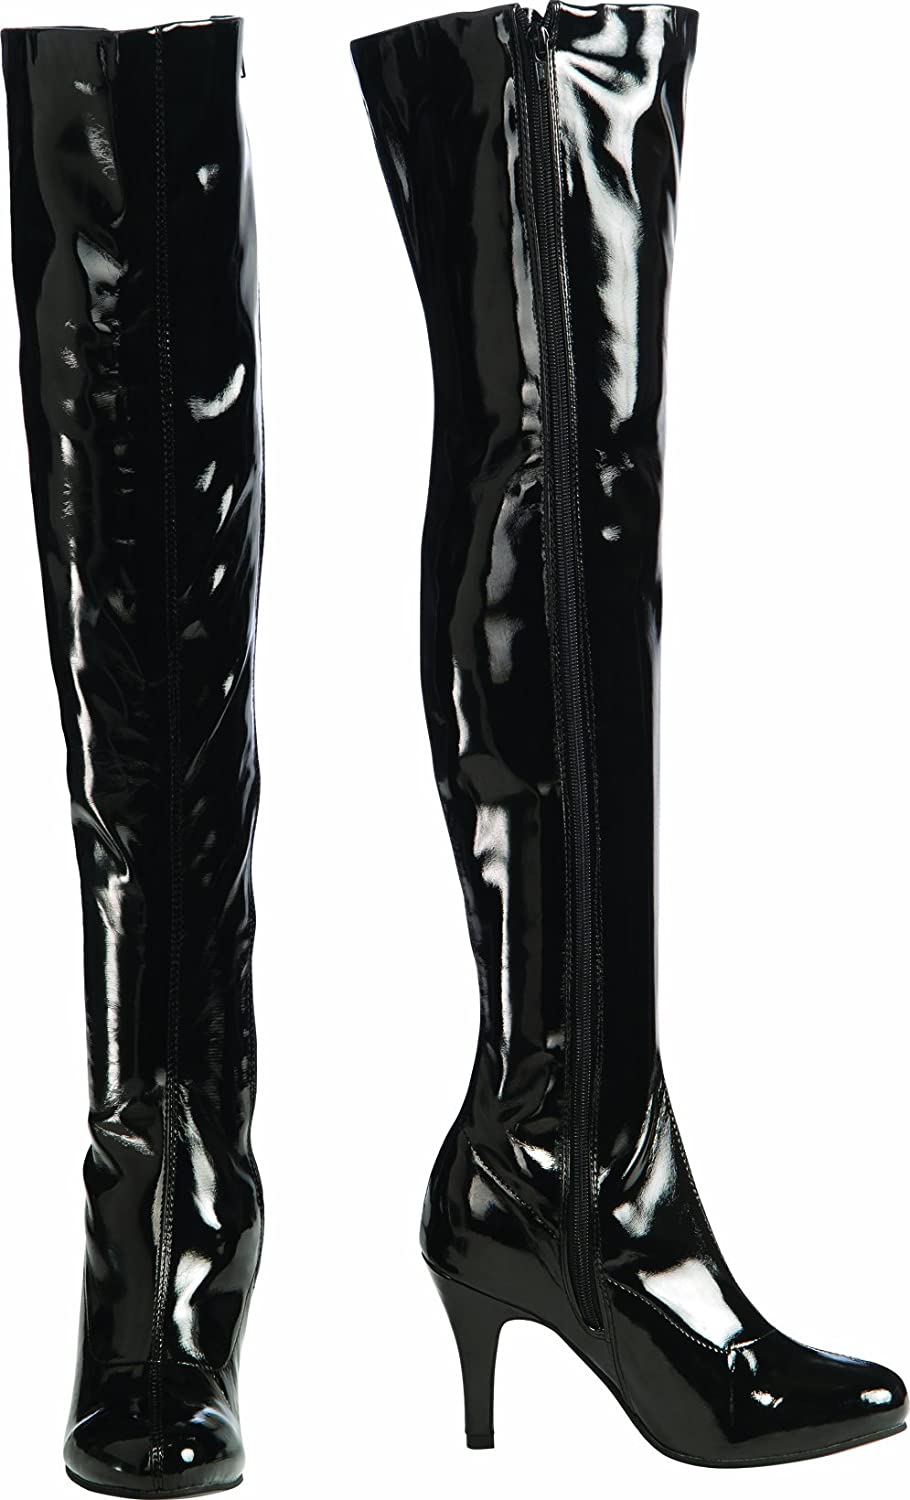 Secret Wishes Thigh-High Boots Heels Las Vegas Mall With Stiletto New York Mall